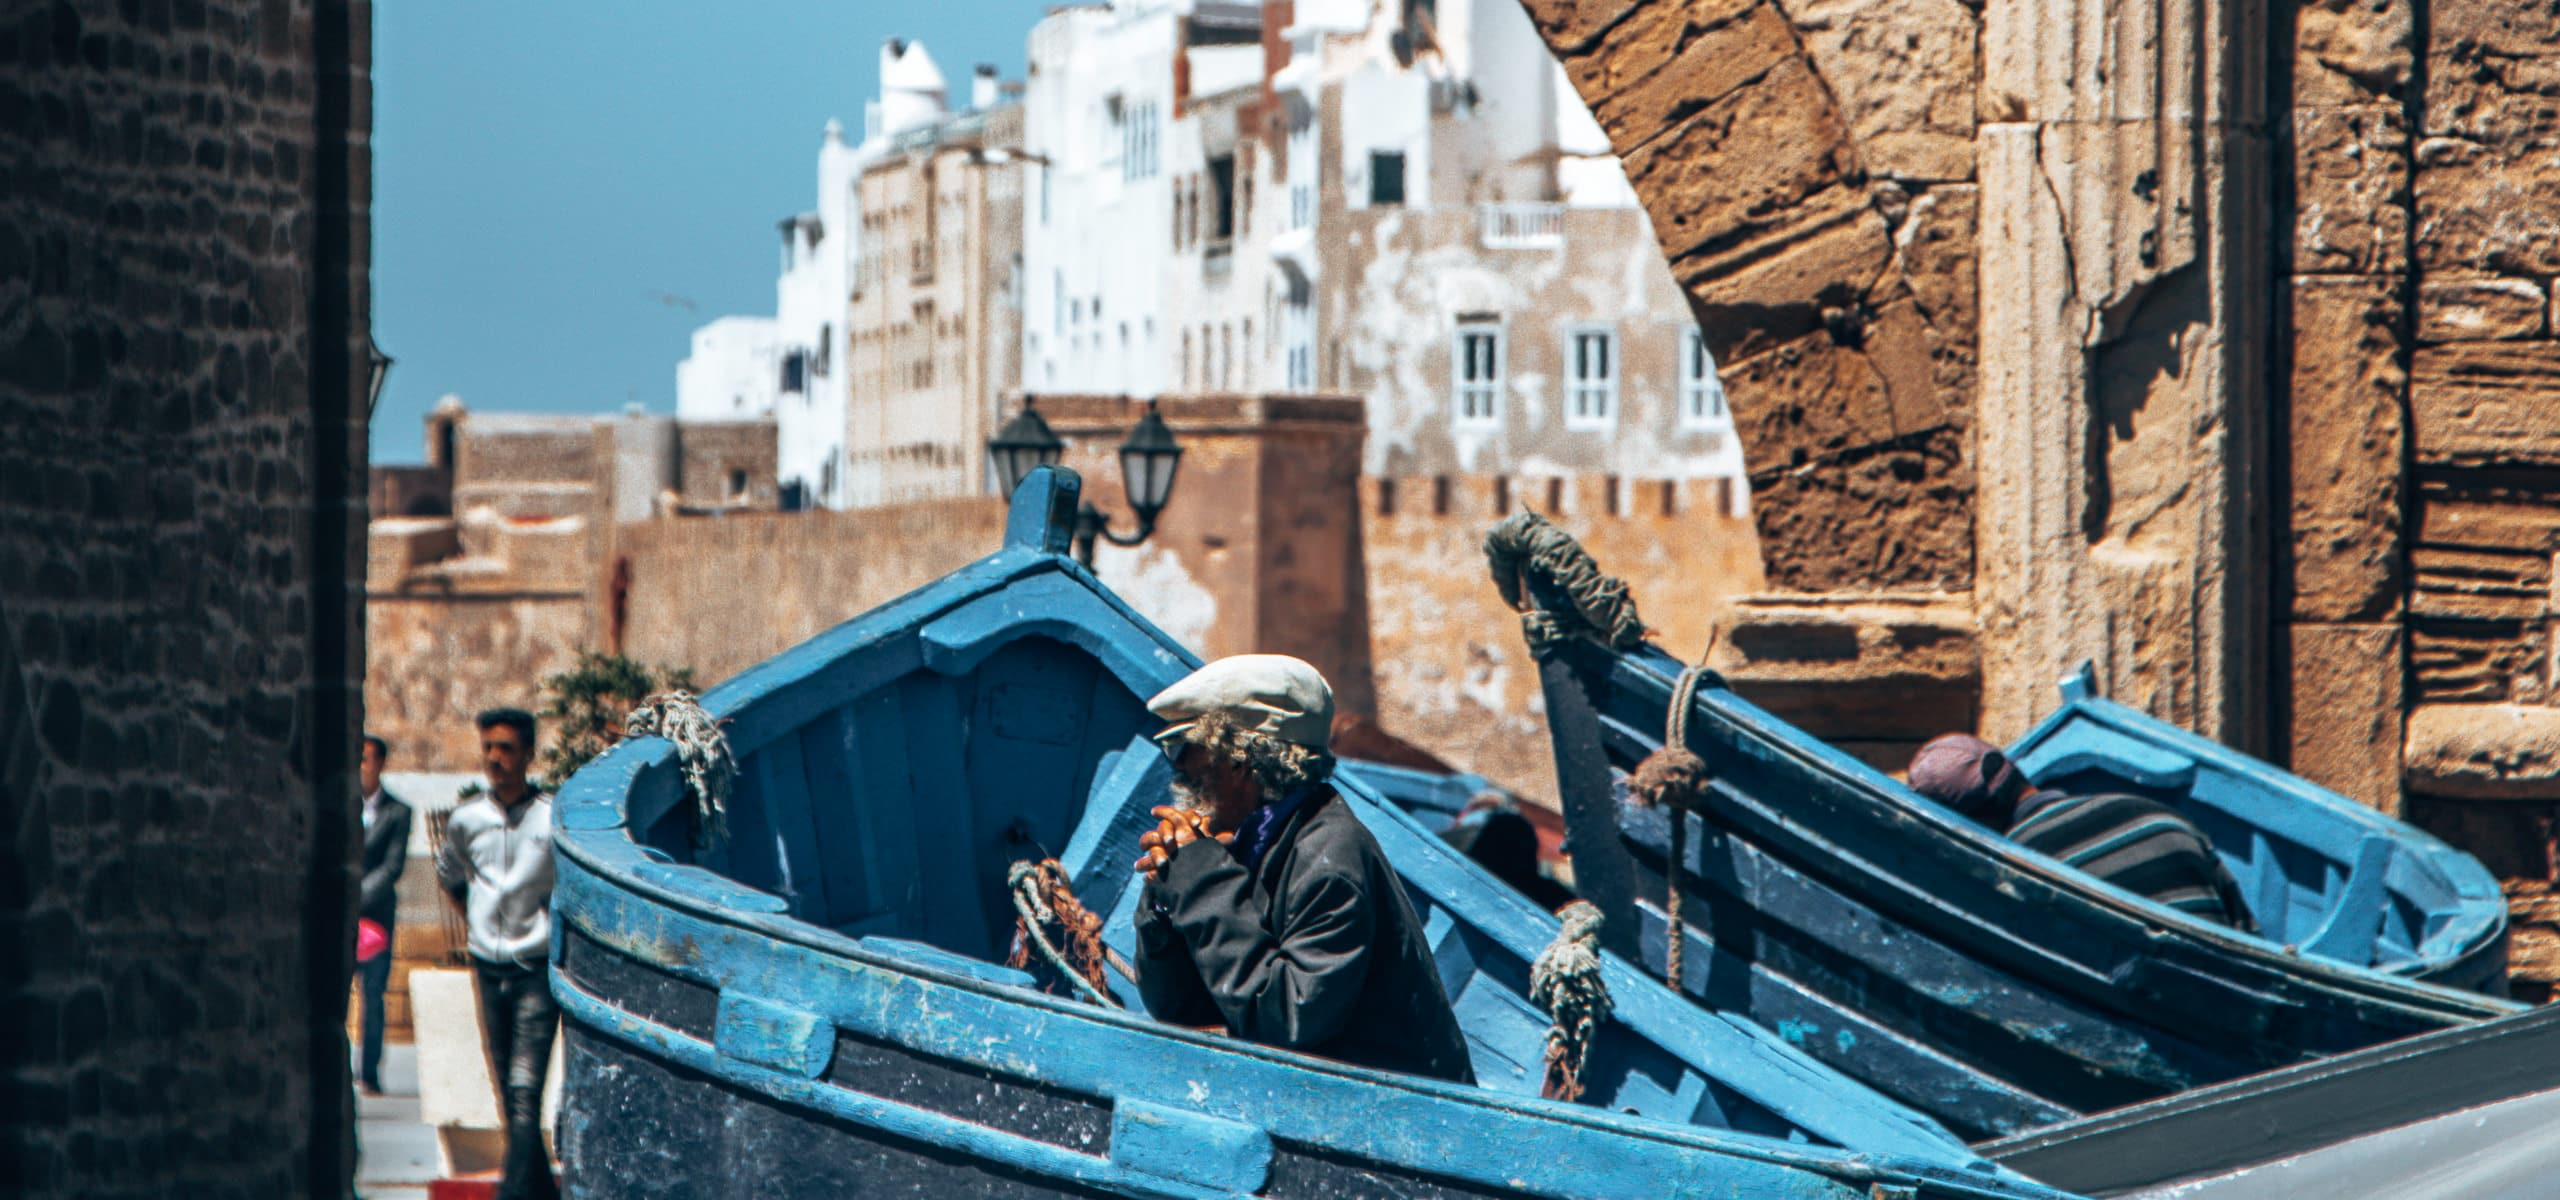 Your Complete Travel Guide To Essaouira, Morocco